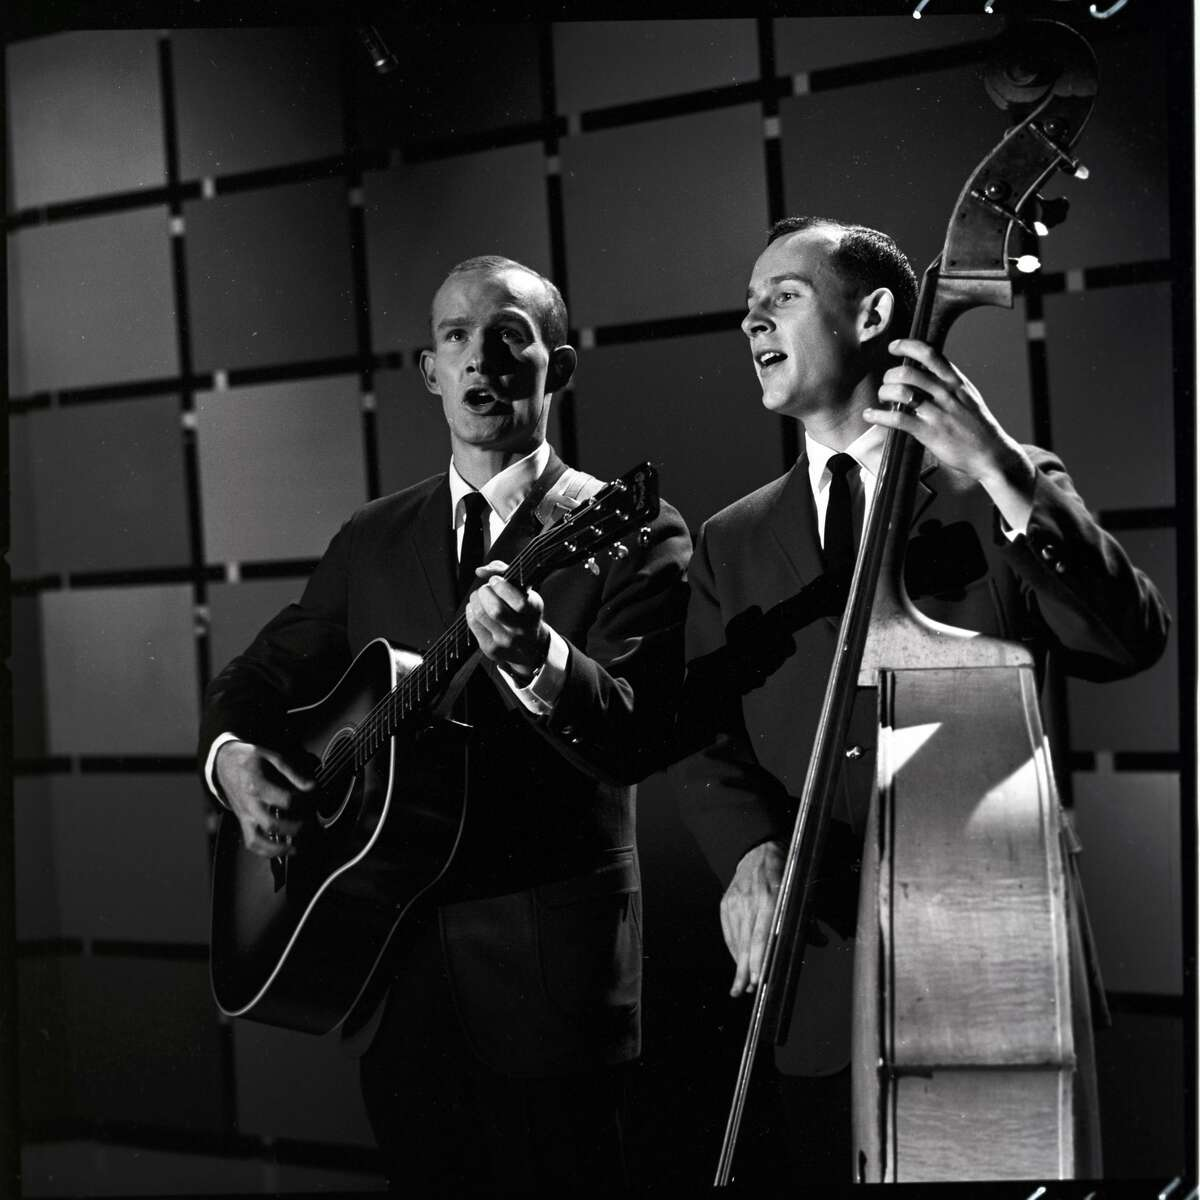 Smothers Brothers Brothers Tom and Dick Smothers, sons of an Army officer, were born on Governors Island, New York and raised in Los Angeles, but didn't tap into their creative interests until both attended San Jose State University in the late 1950s. While in the Bay Area, they briefly joined a folk group called the Casual Quintet, but in 1959 started their own duo act, the Smothers Brothers, where they played folk tunes and entertained their audiences with comic witty banter. By 1963, the pair had transformed their act into one that completely leaned into comedy, solidifying their appeal to listeners. Several years later, they landed a lauded (but short-lived) show on CBS called